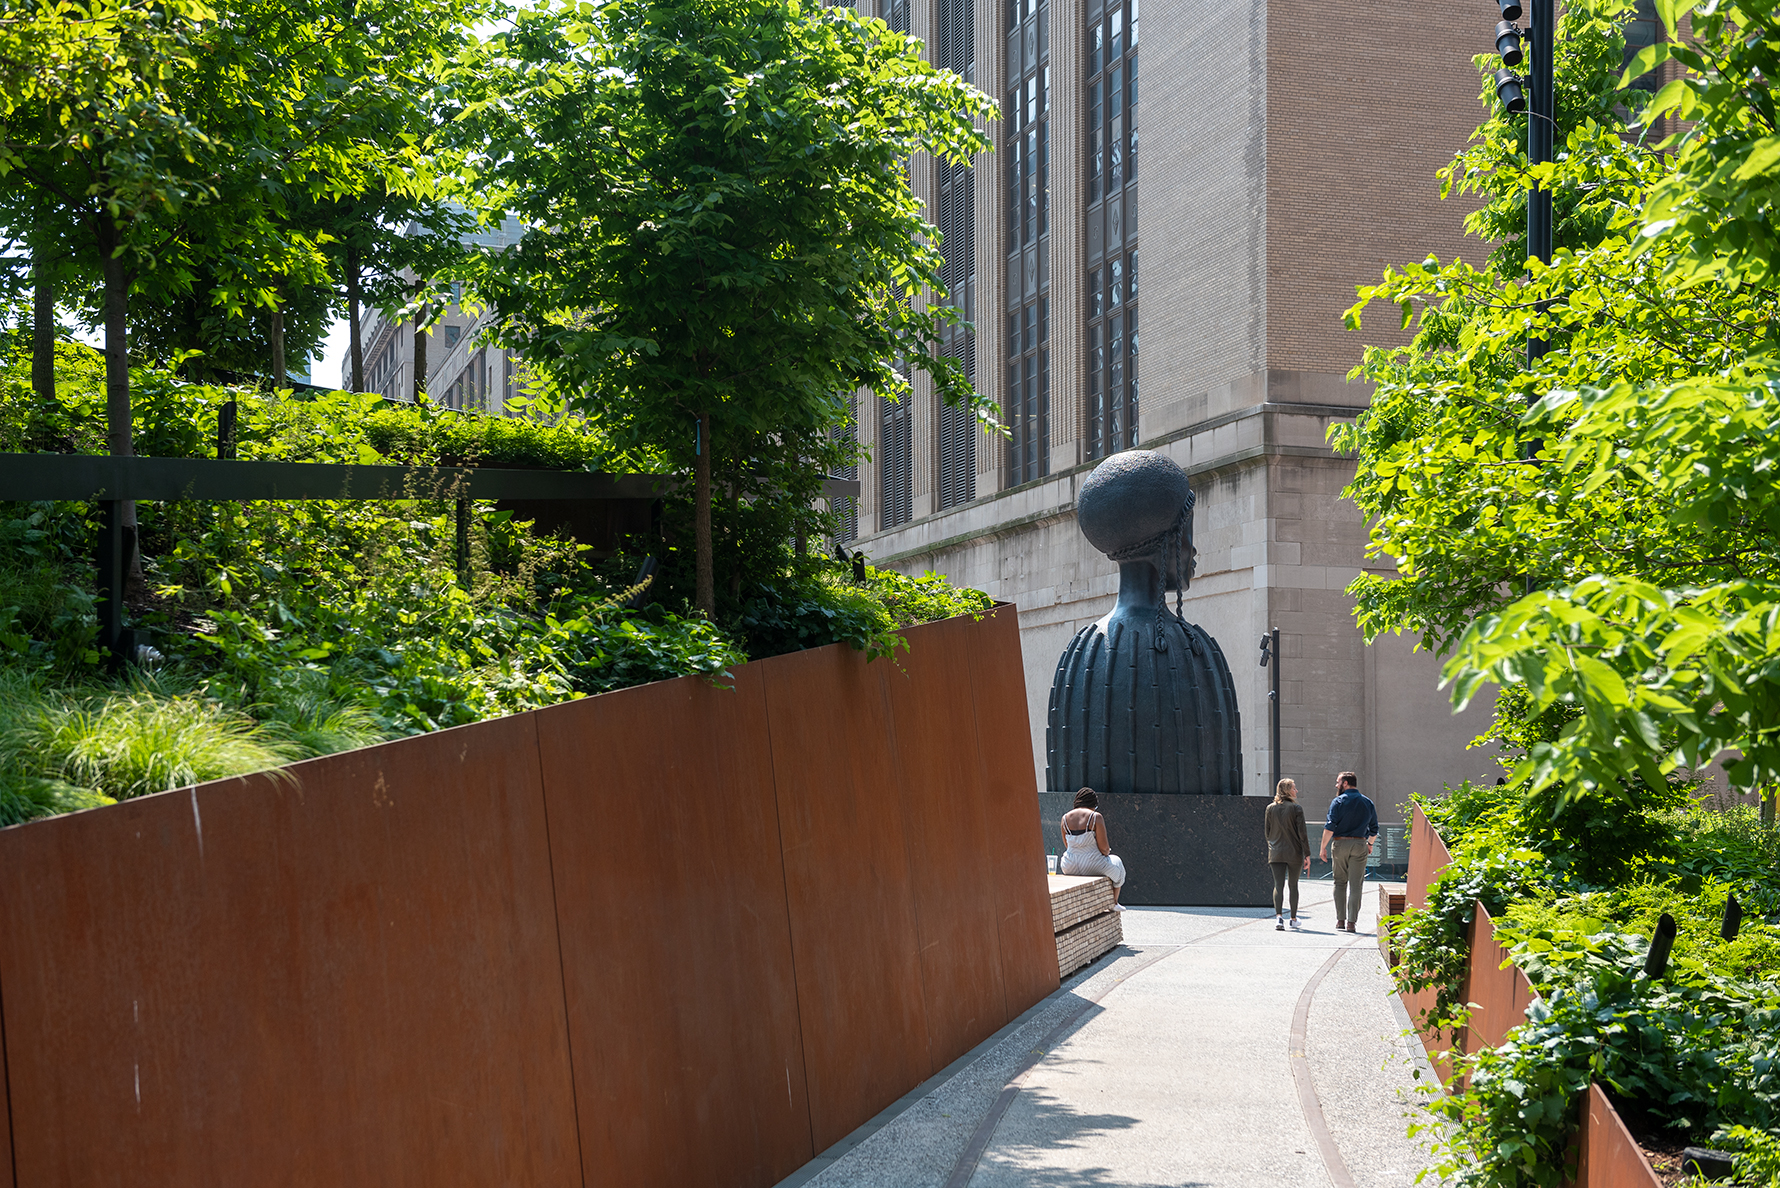 The back of the sculpture Brick House, the 16-foot-tall bust of a Black woman, as seen through a threshold of trees